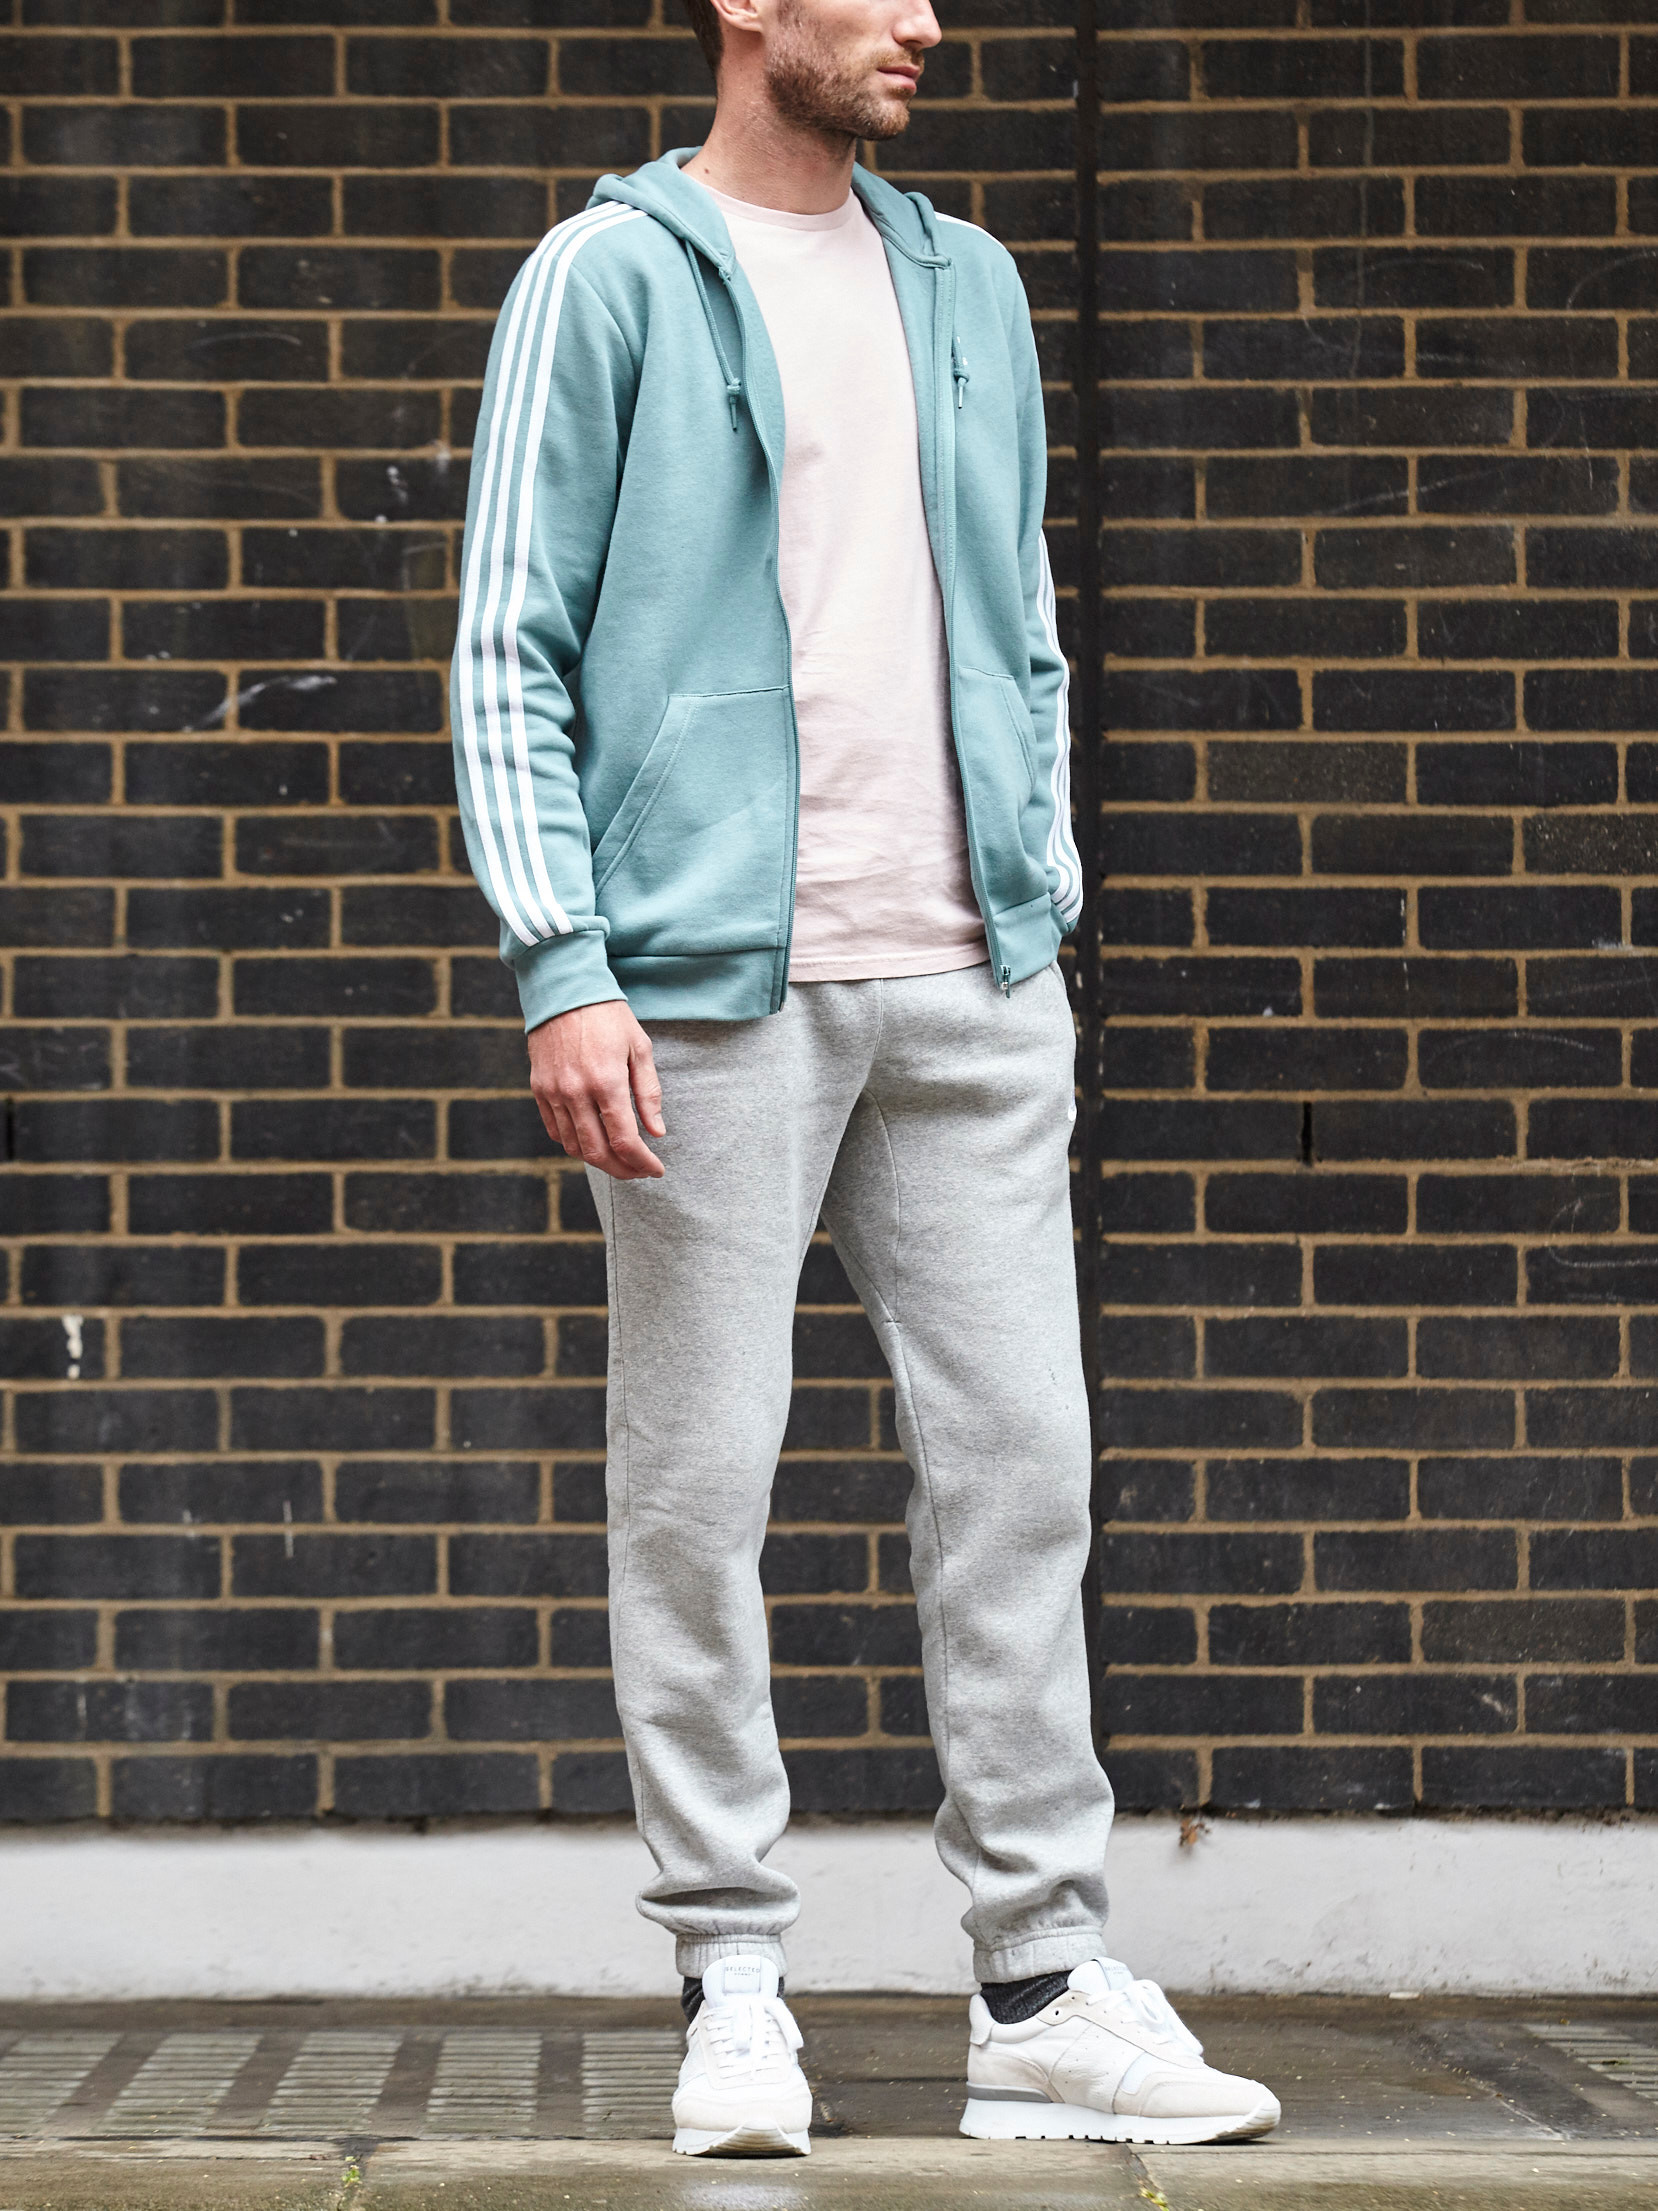 Men's outfit idea for 2021 with blue hoody, pale-colored crew neck t-shirt, sweatpants, white sneakers. Suitable for spring and fall.